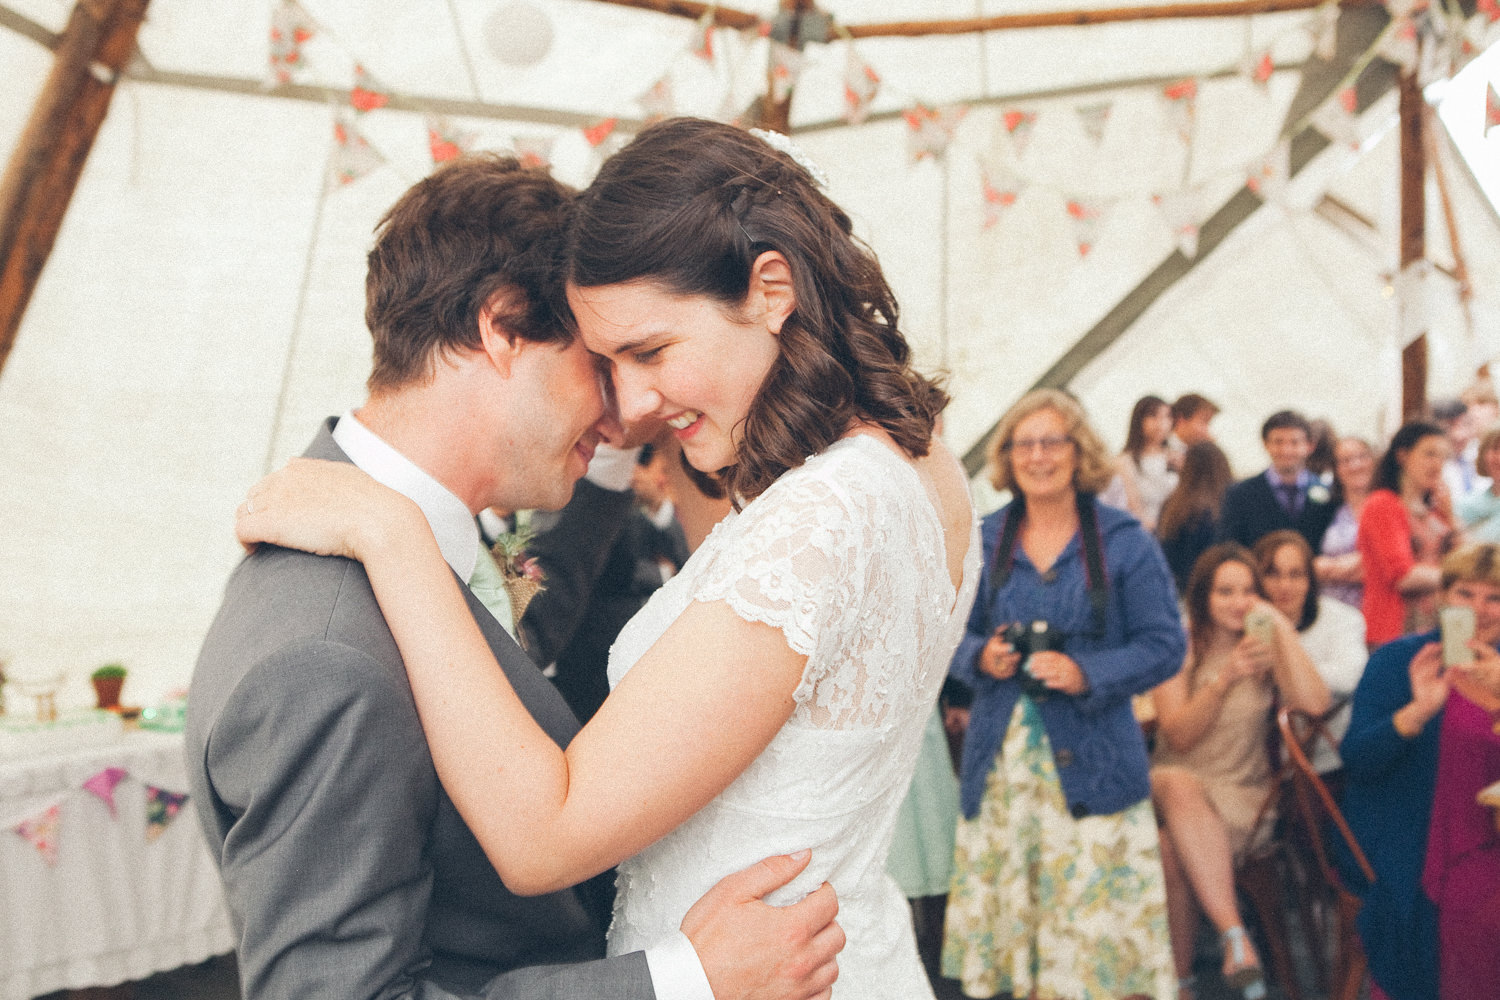 25th June 2016. Jenny and David get married at Ceridwen, Welsh Green Weddings.